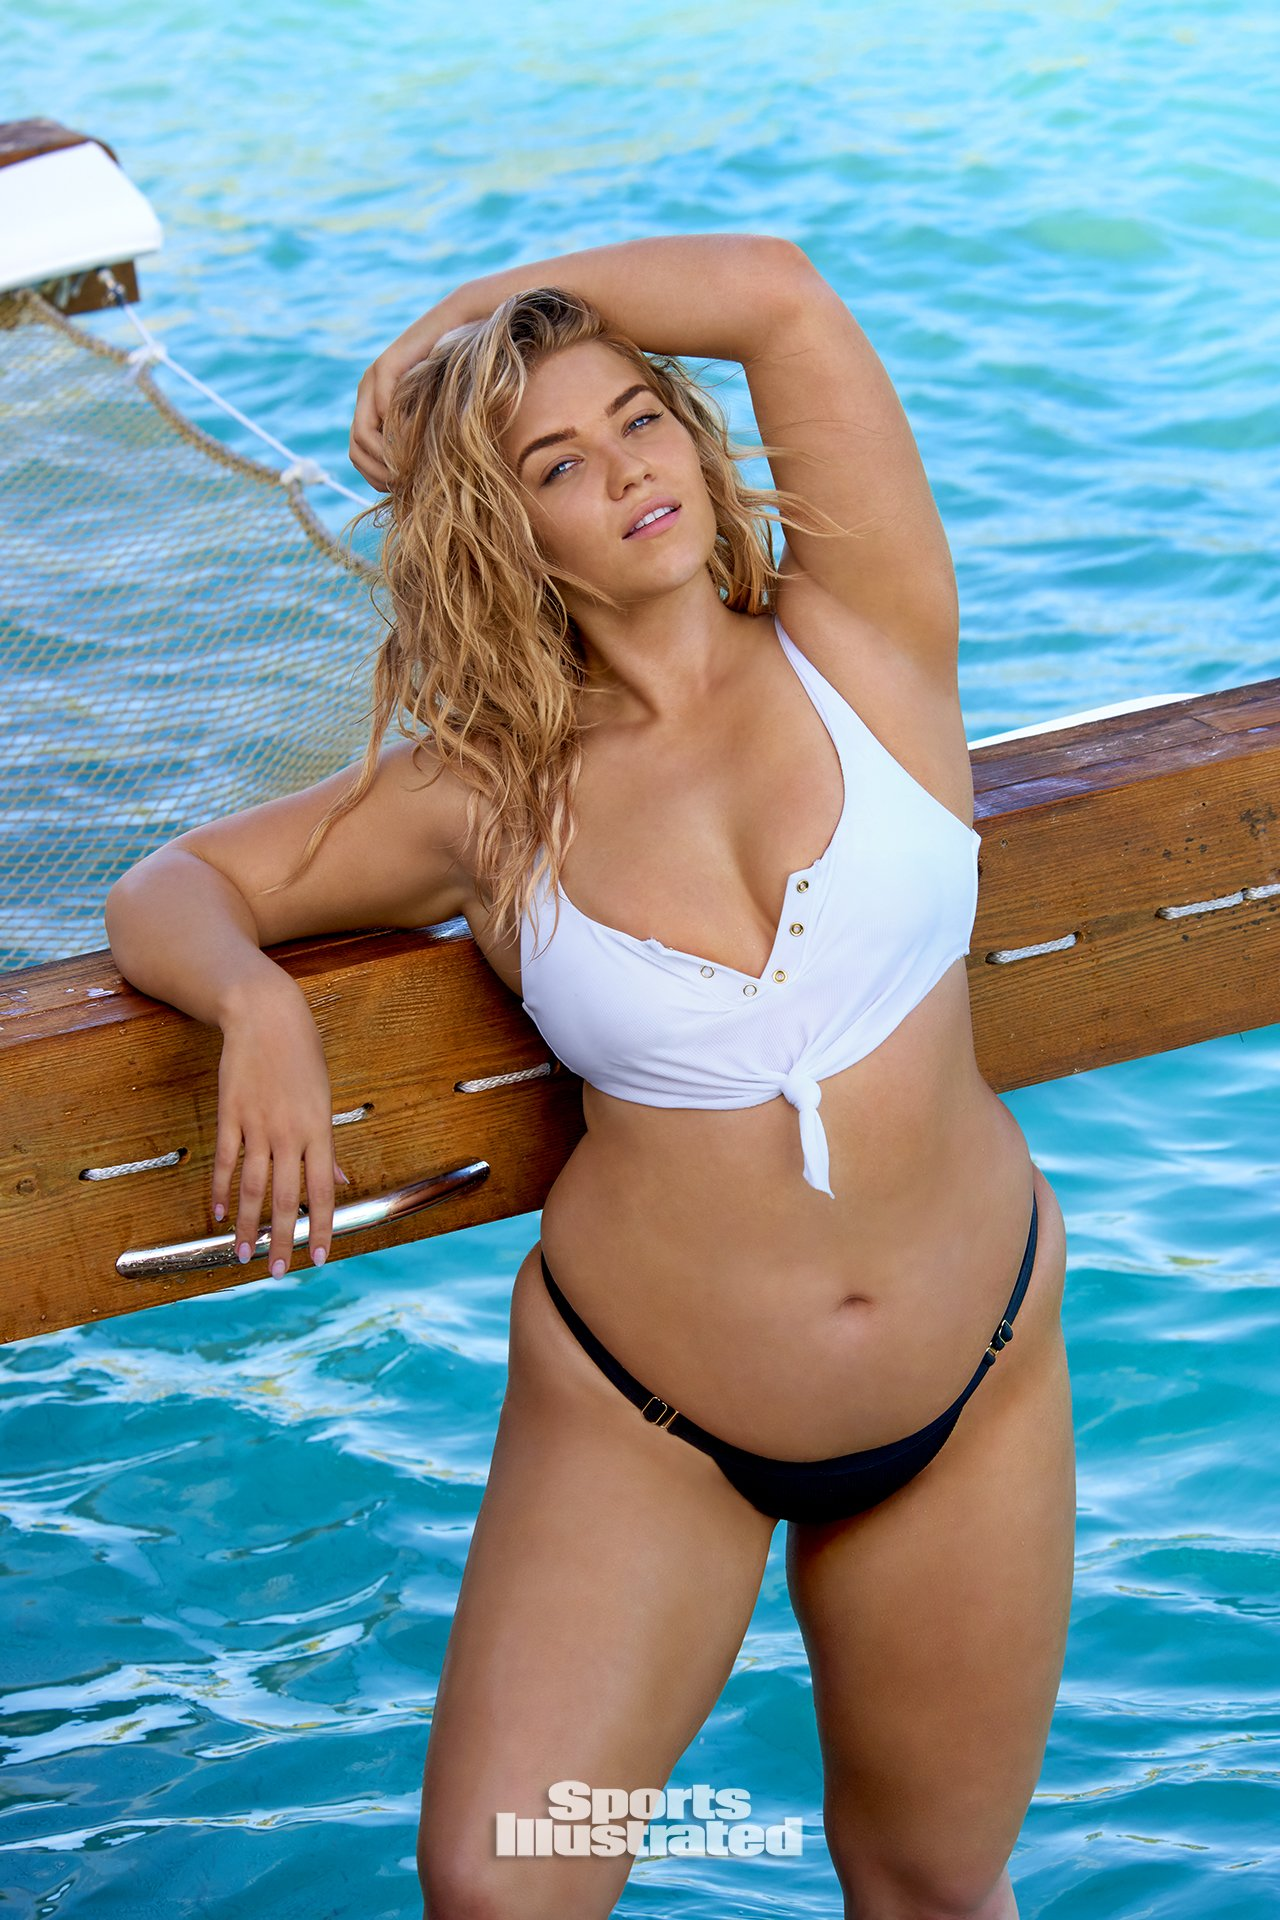 Sports Illustrated Swimsuit Issue 2018024.jpg